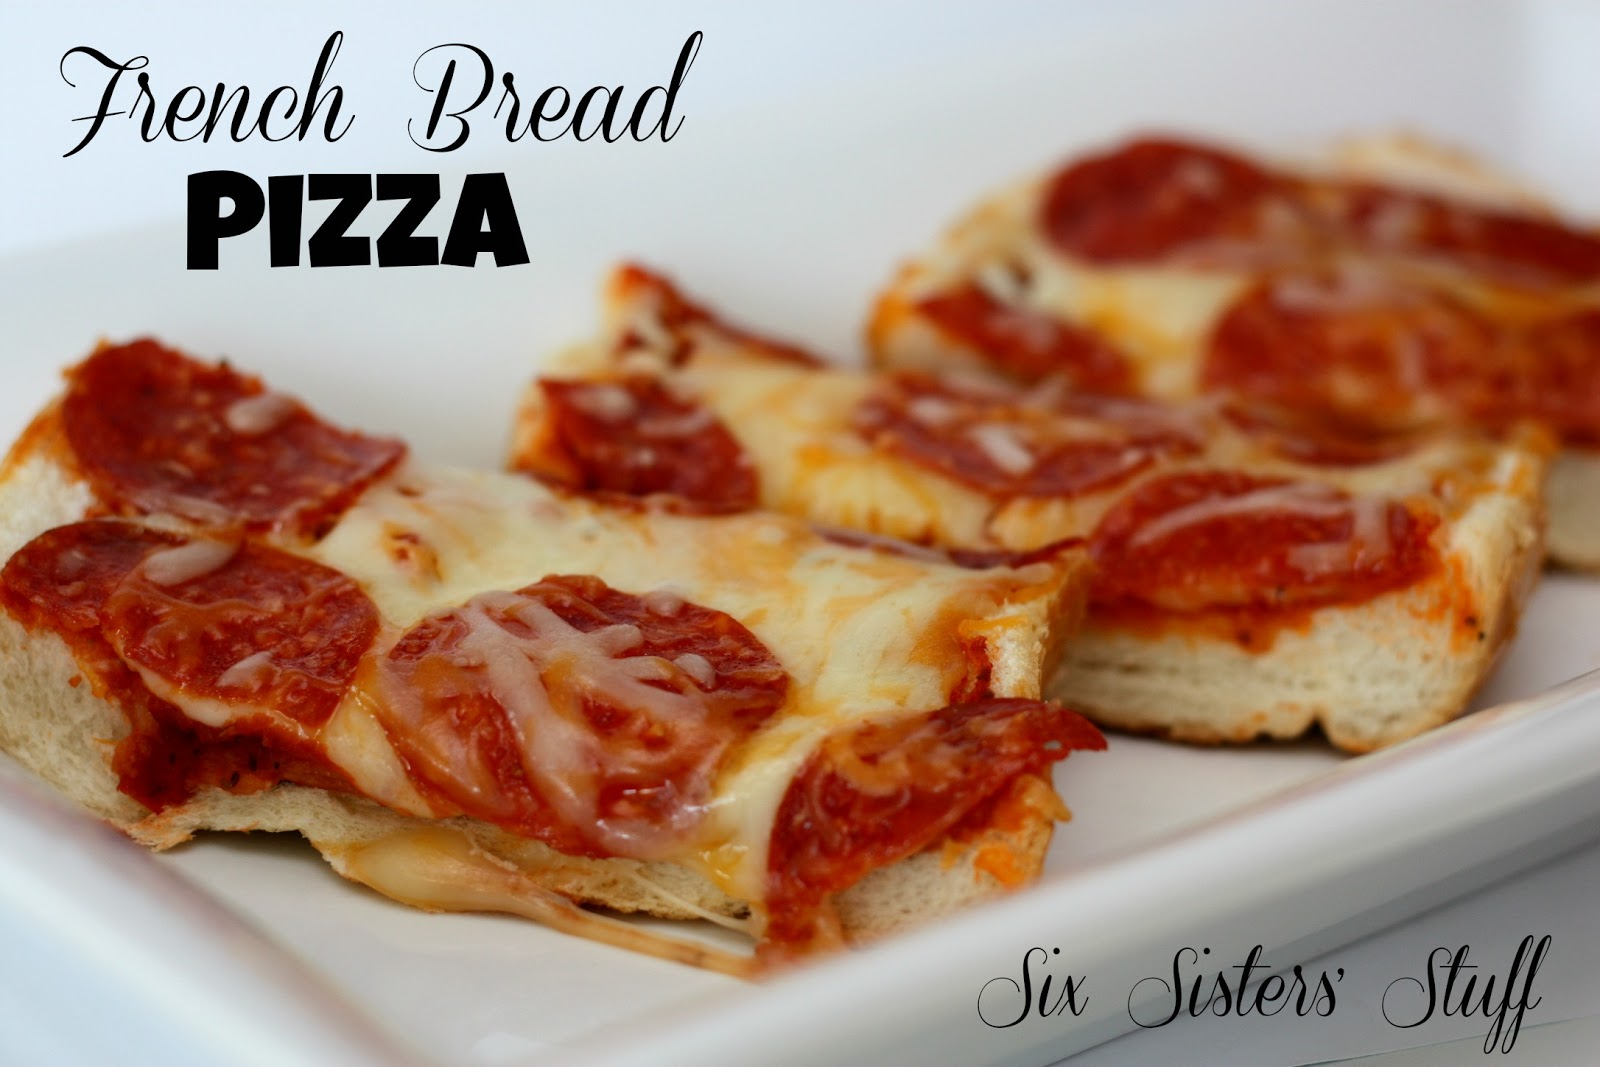 French Bread Pizza | Six Sisters' Stuff